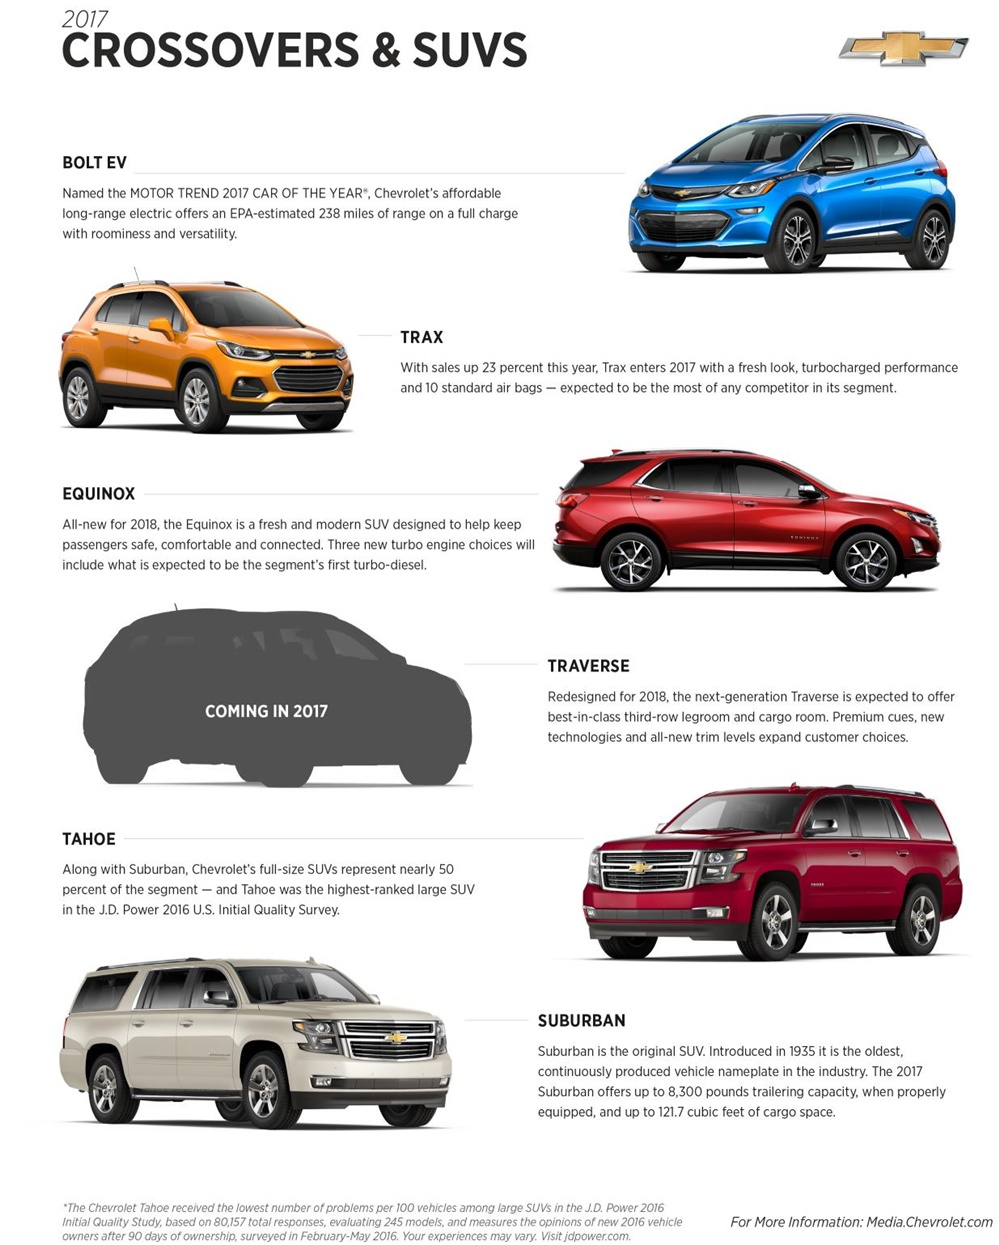 2017 Chevrolet Crossover SUVs at 2018 Chevrolet Traverse to Debut at NAIAS